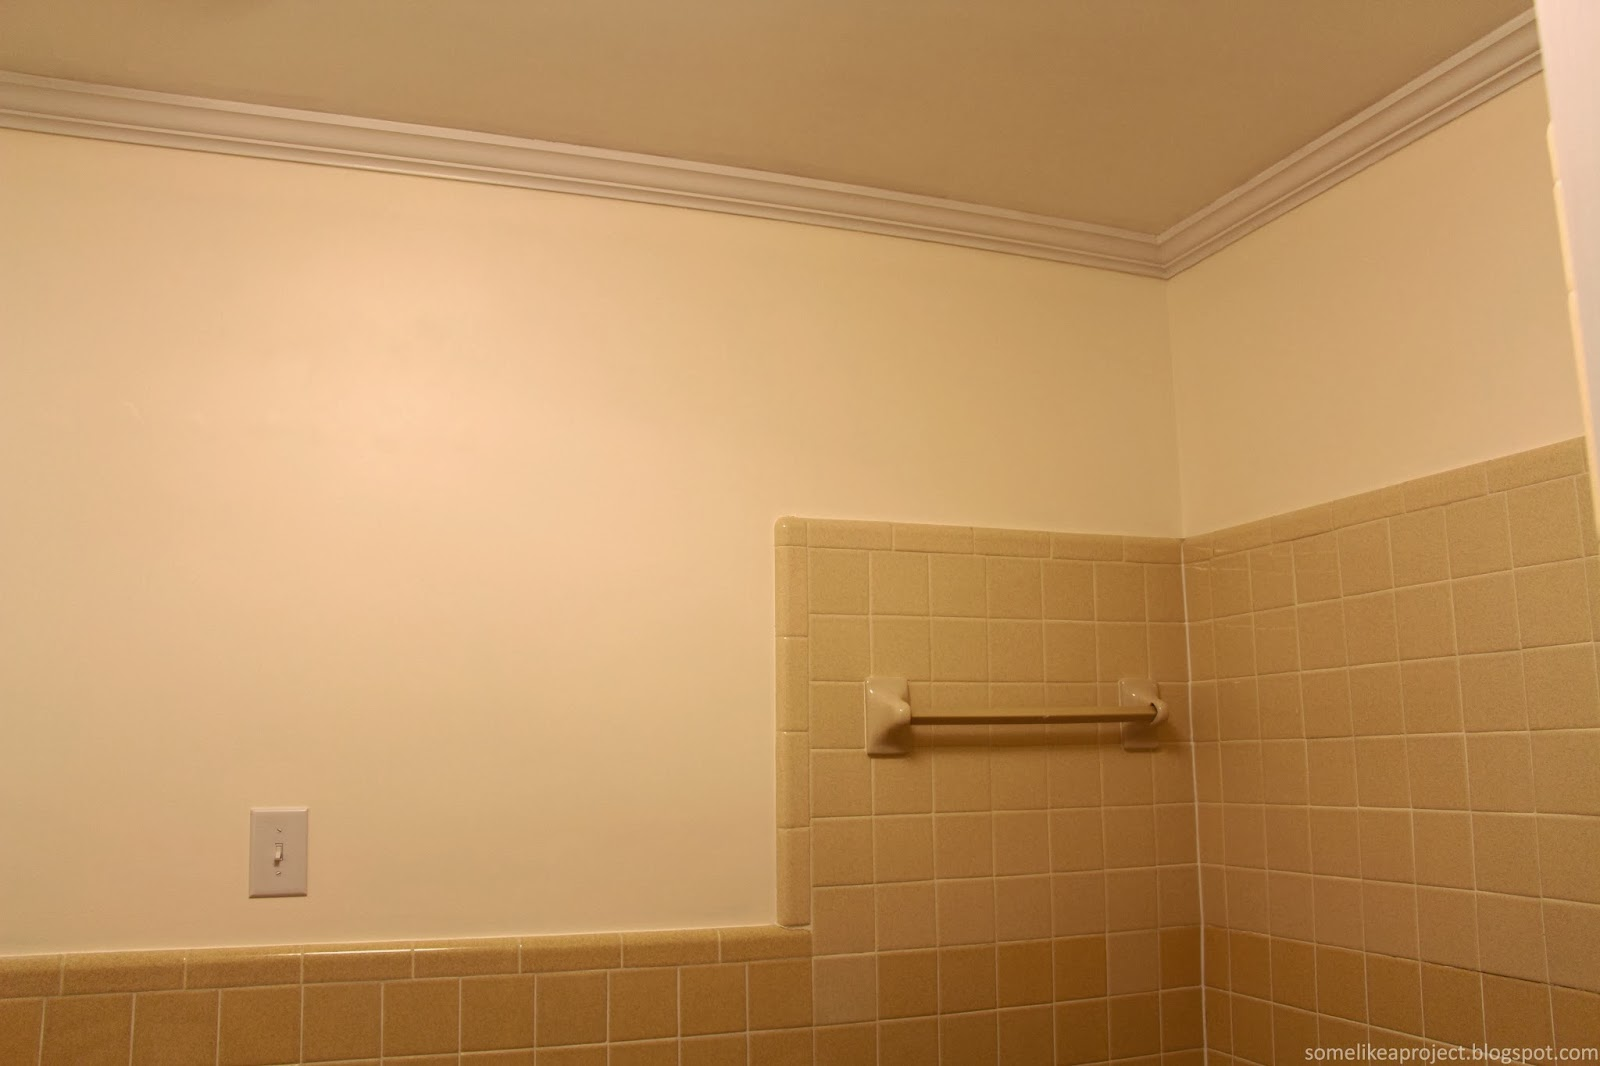 Some Like A Project: Guest Bathroom Wall Color and Revised Mood Board